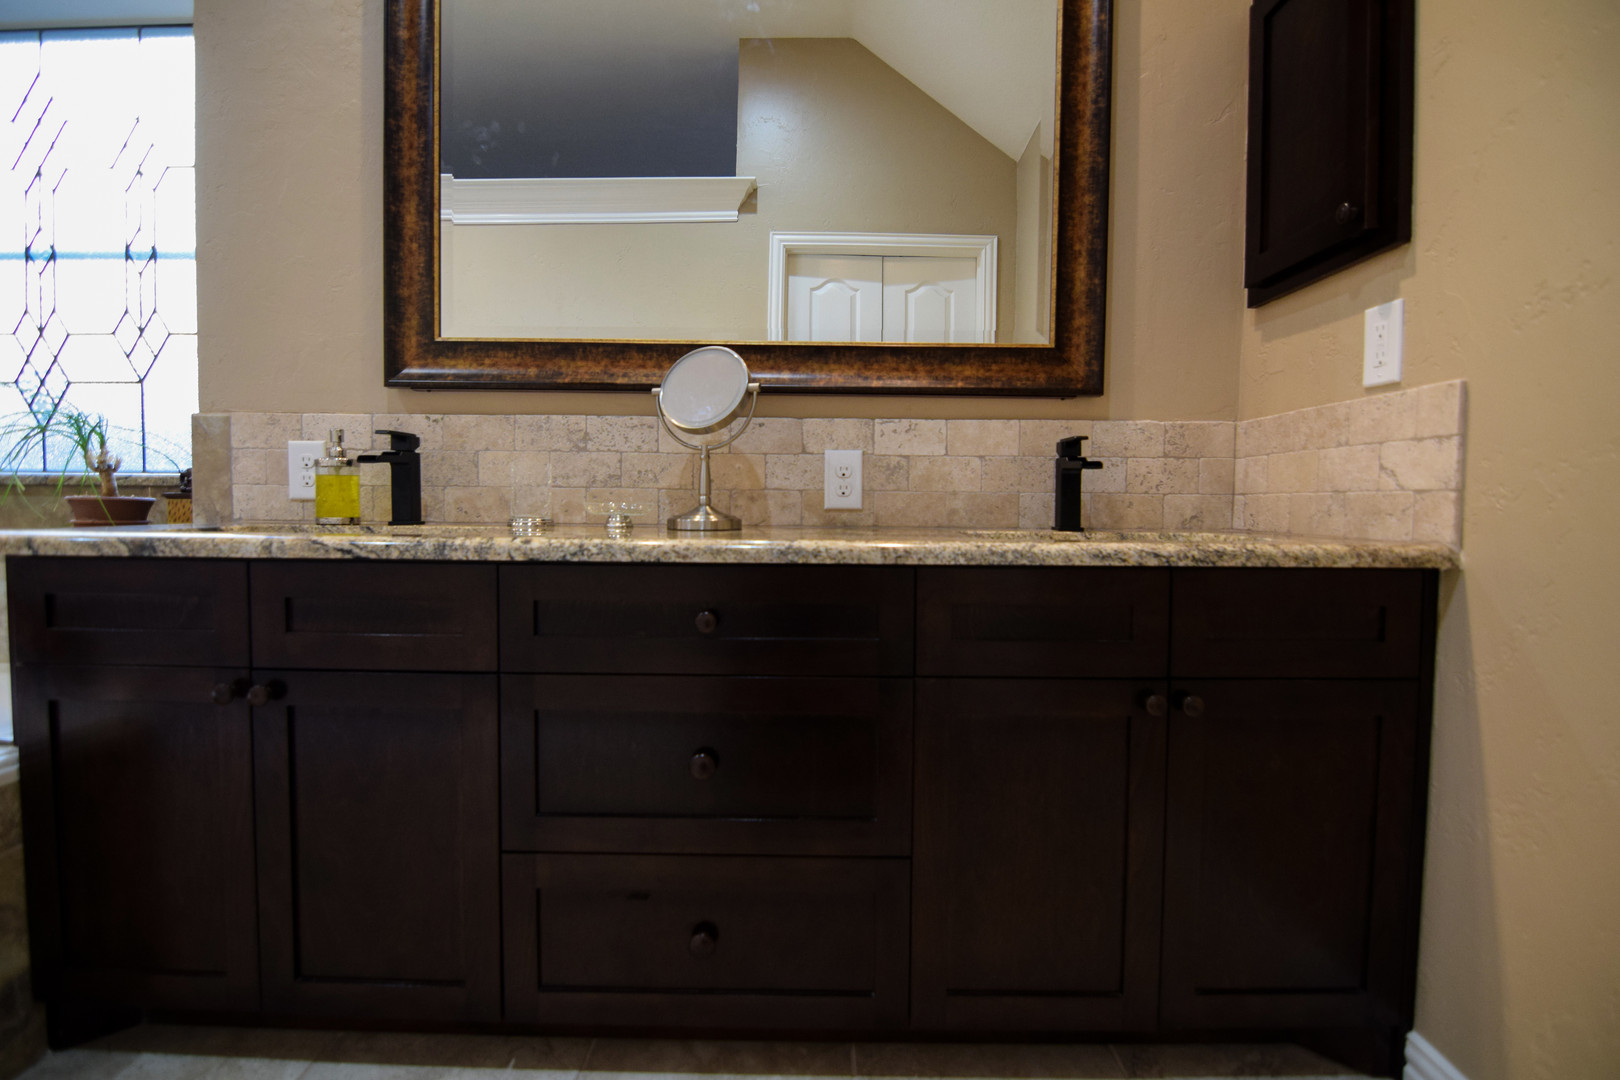 Cabinet Refacing Bathroom Remodel